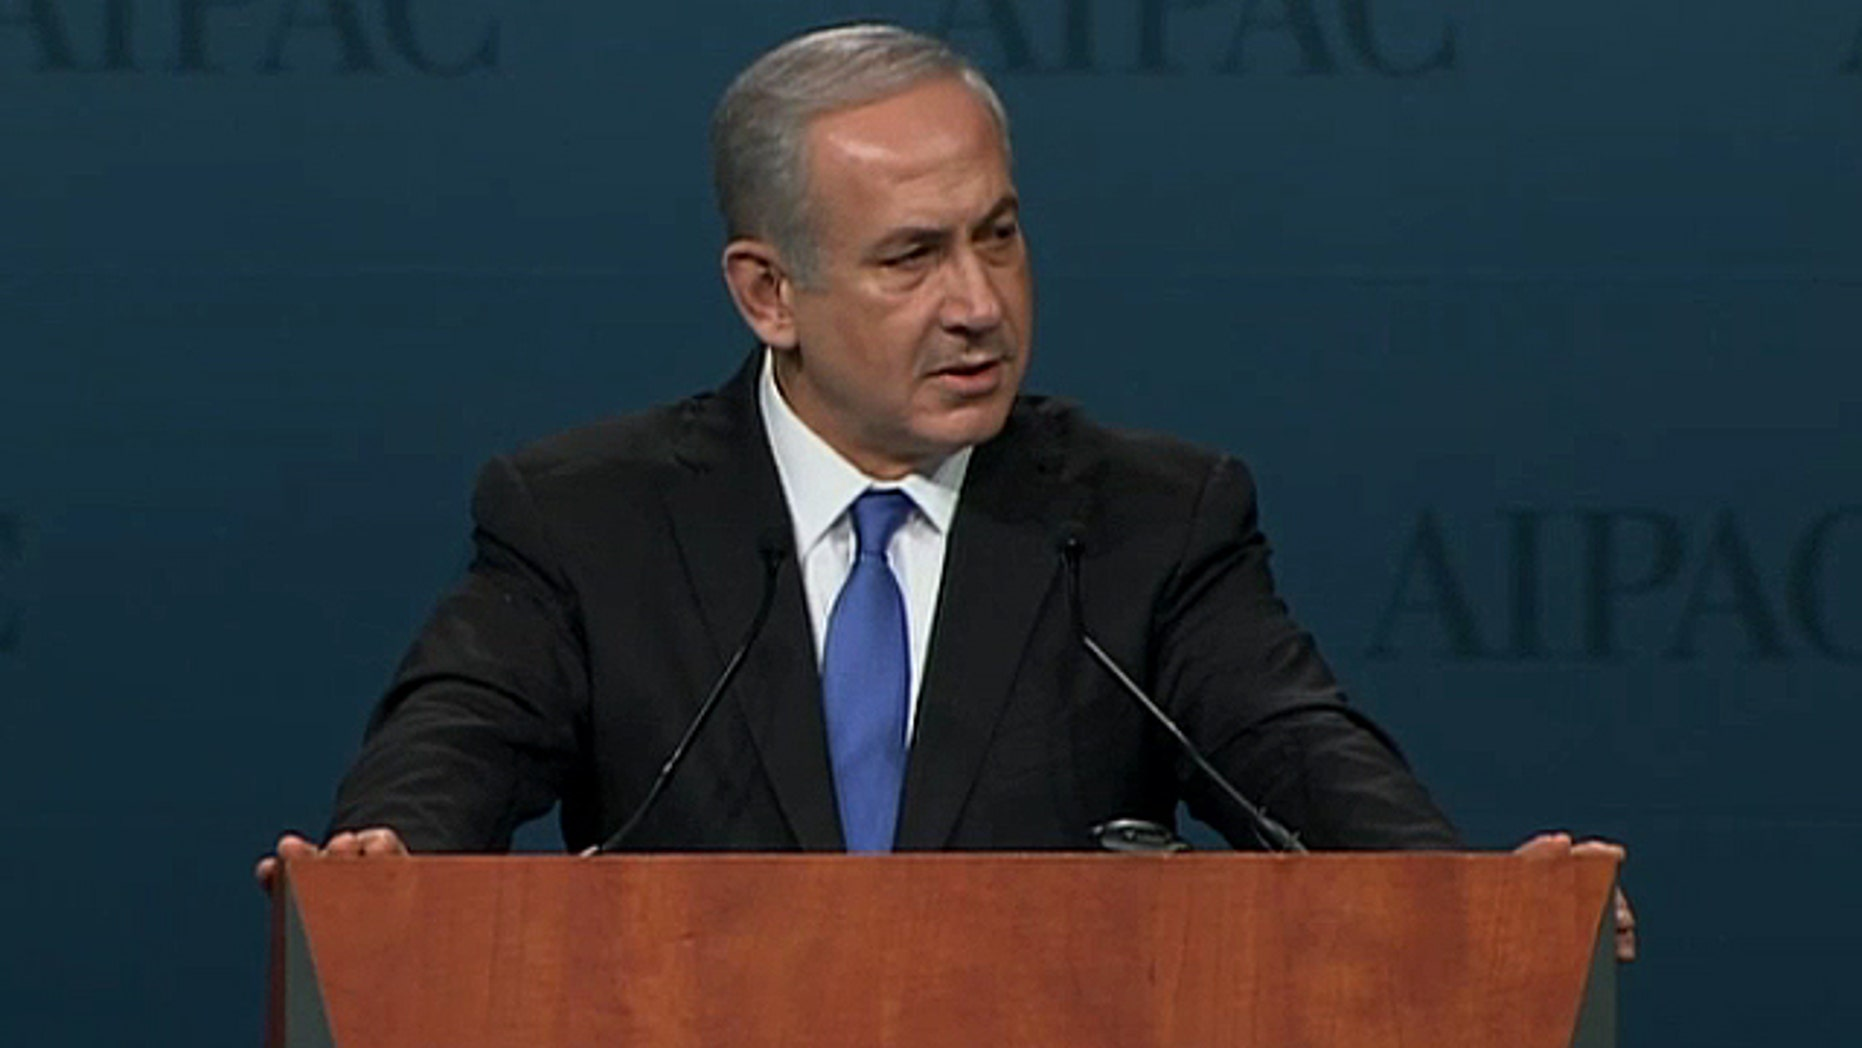 March 5, 2012: Israel Prime Minister Benjamin Netanyahu addresses the American Israel Public Affairs Committee.